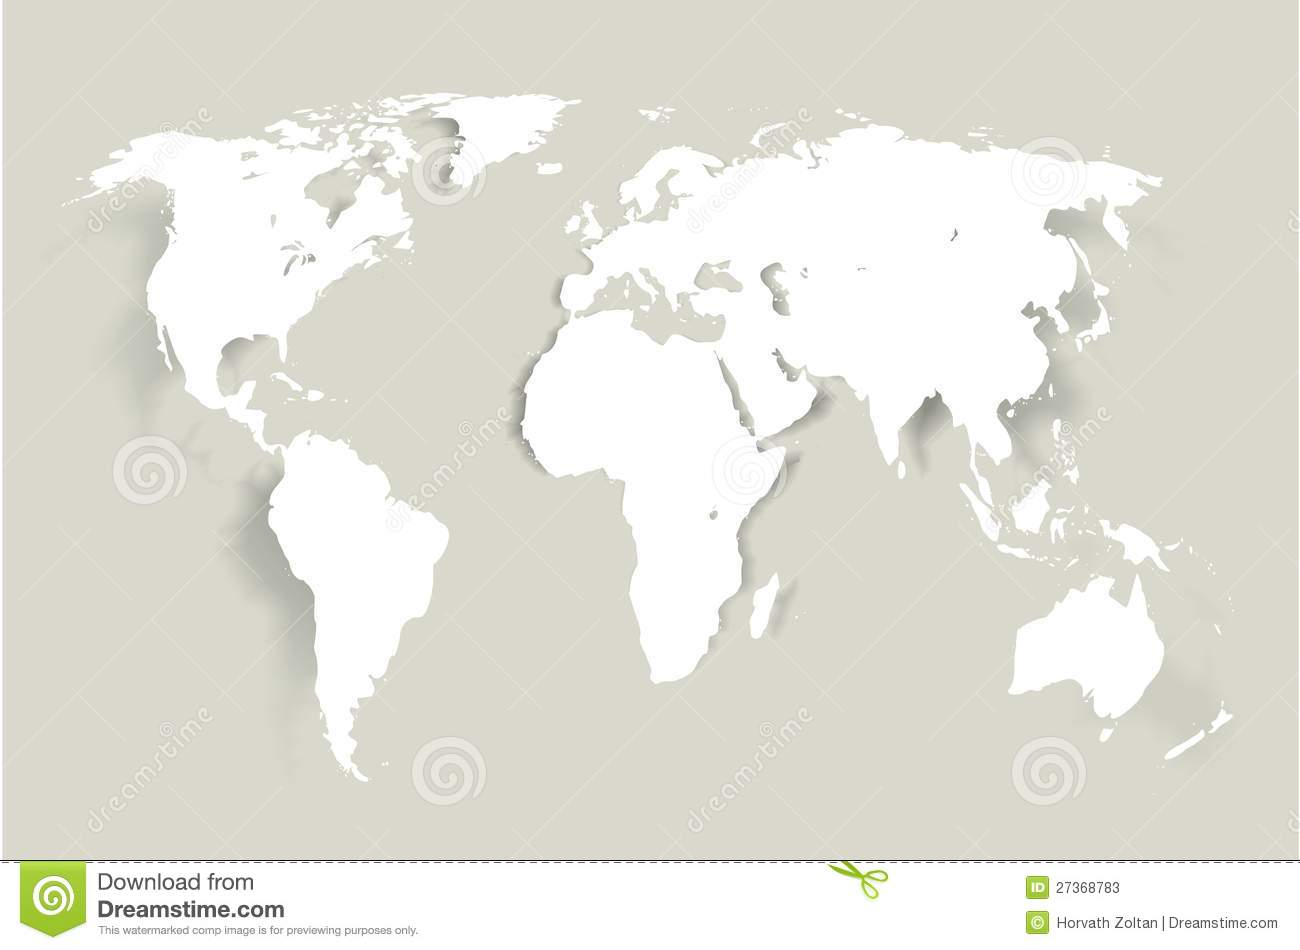 World map vector gray vector world map stock photos world map vector gray gumiabroncs Gallery